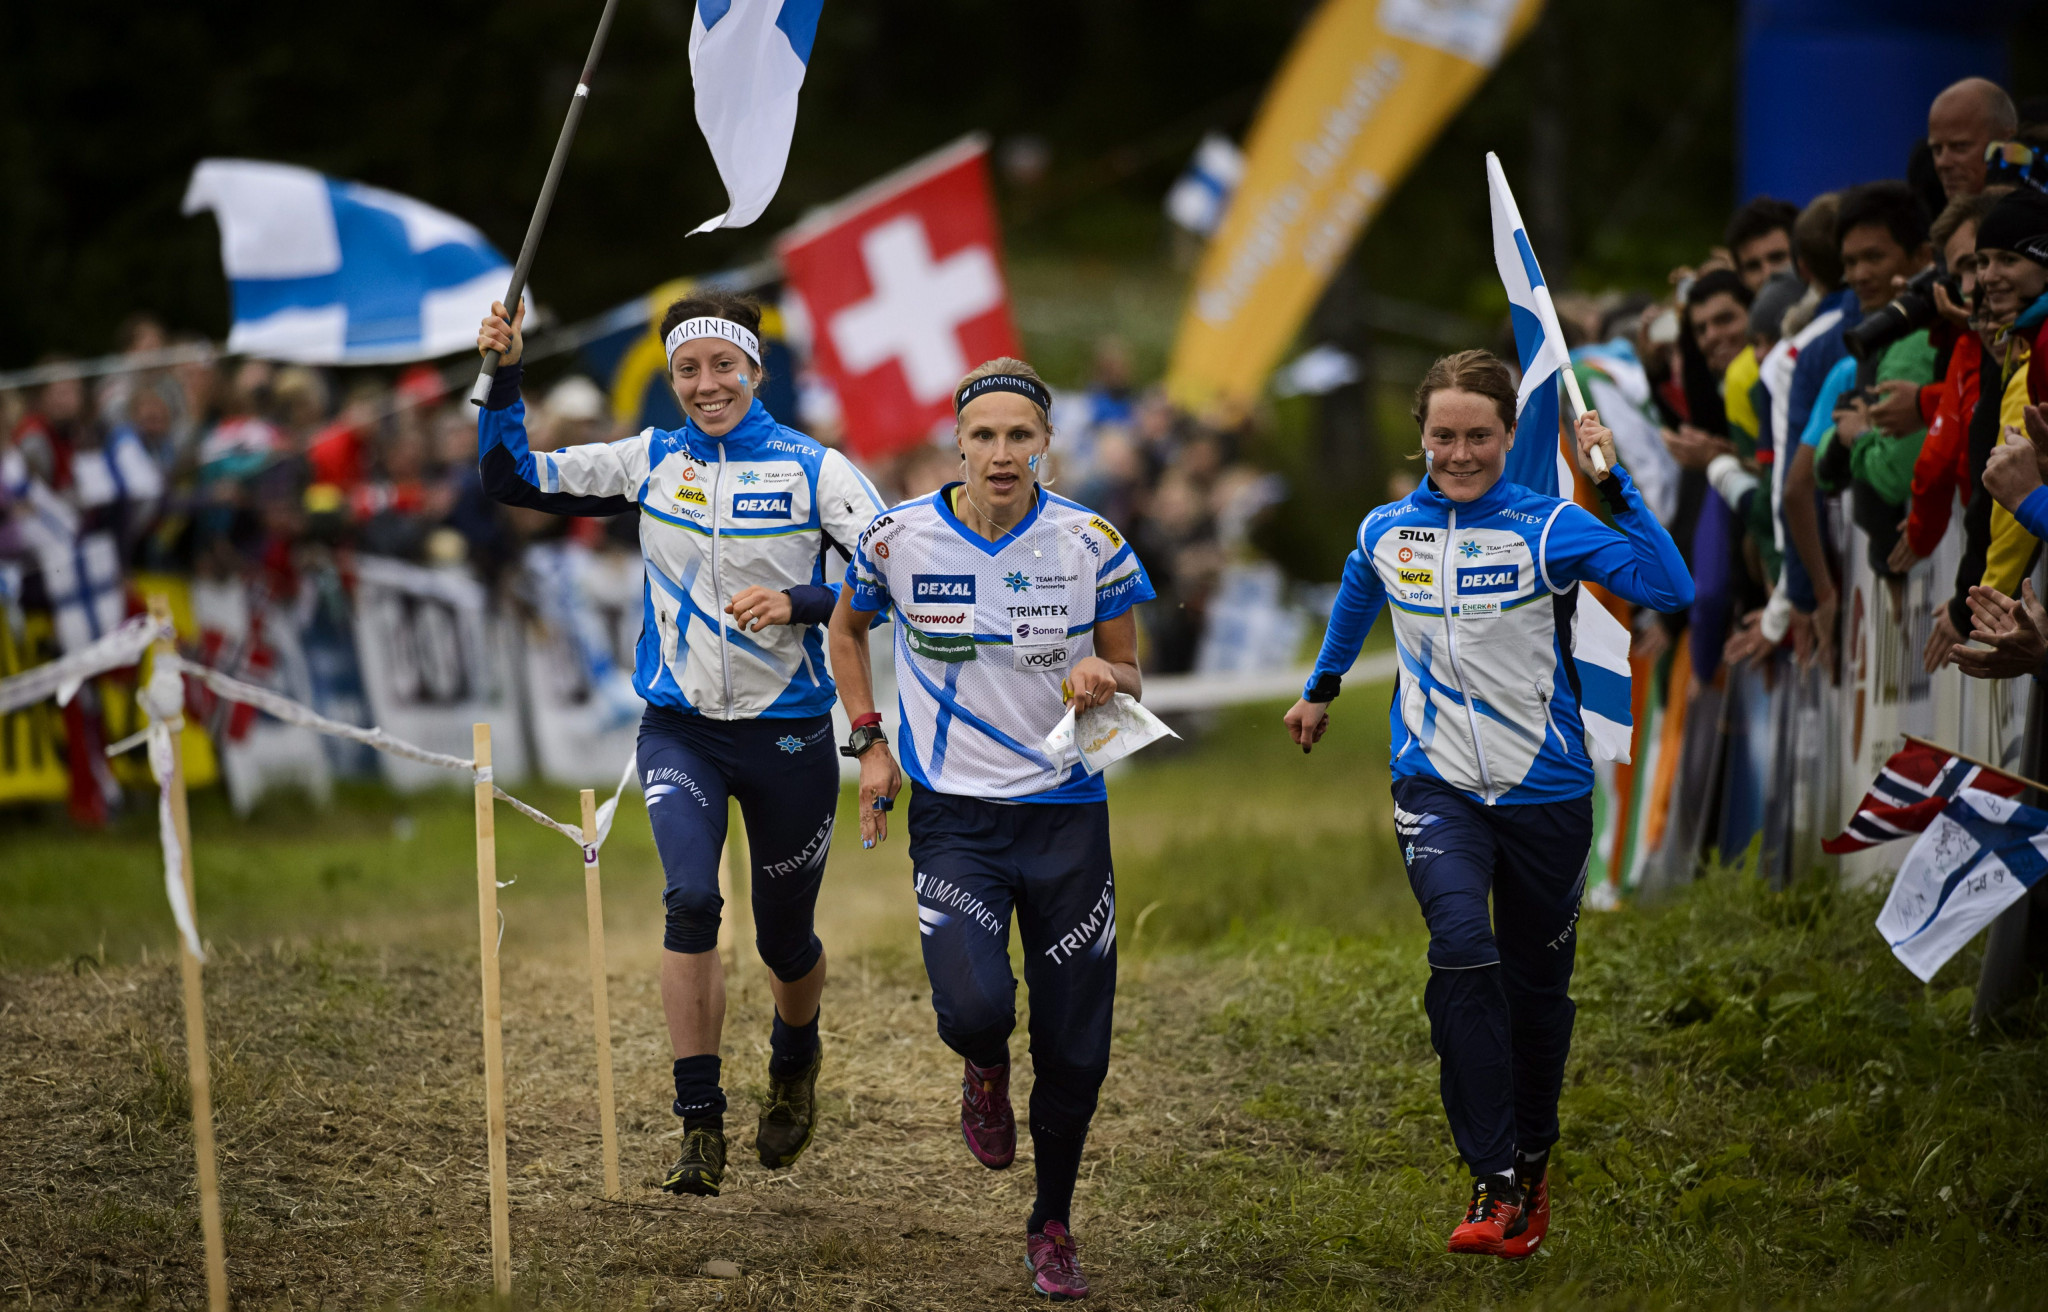 IOF awards 2023 and 2025 World Orienteering Championships to Switzerland and Finland